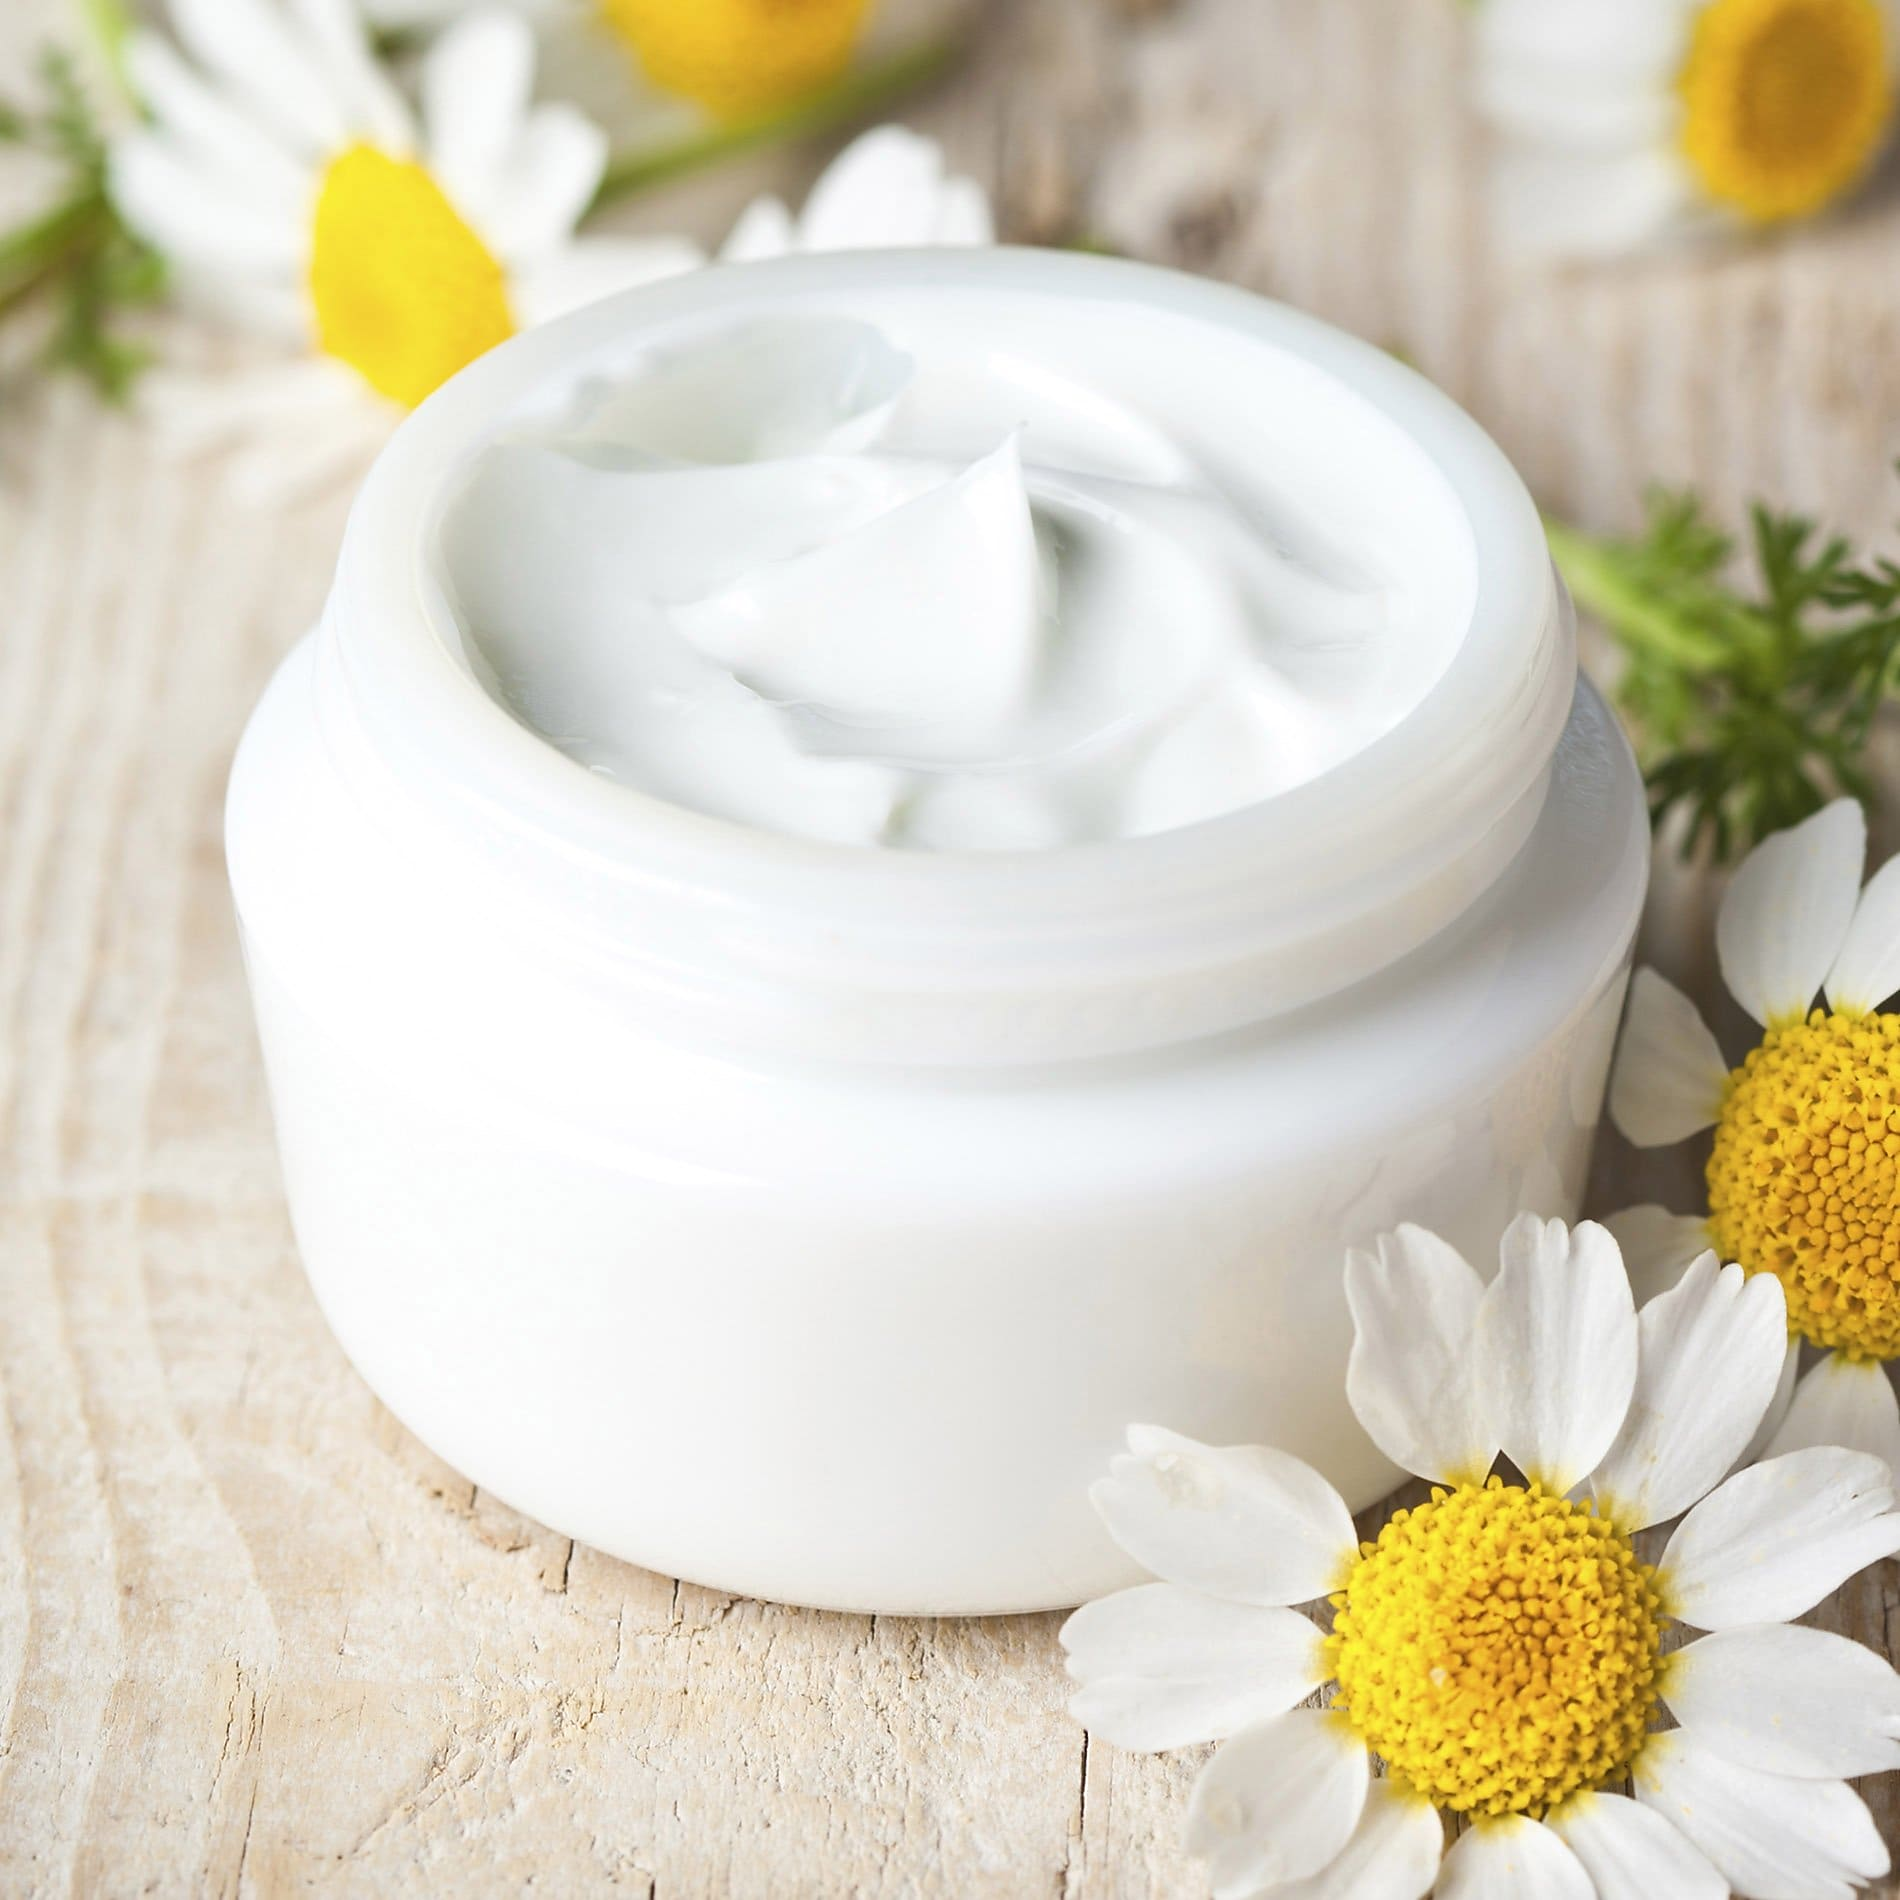 A tub of white face cream on a table surrounded by flowers